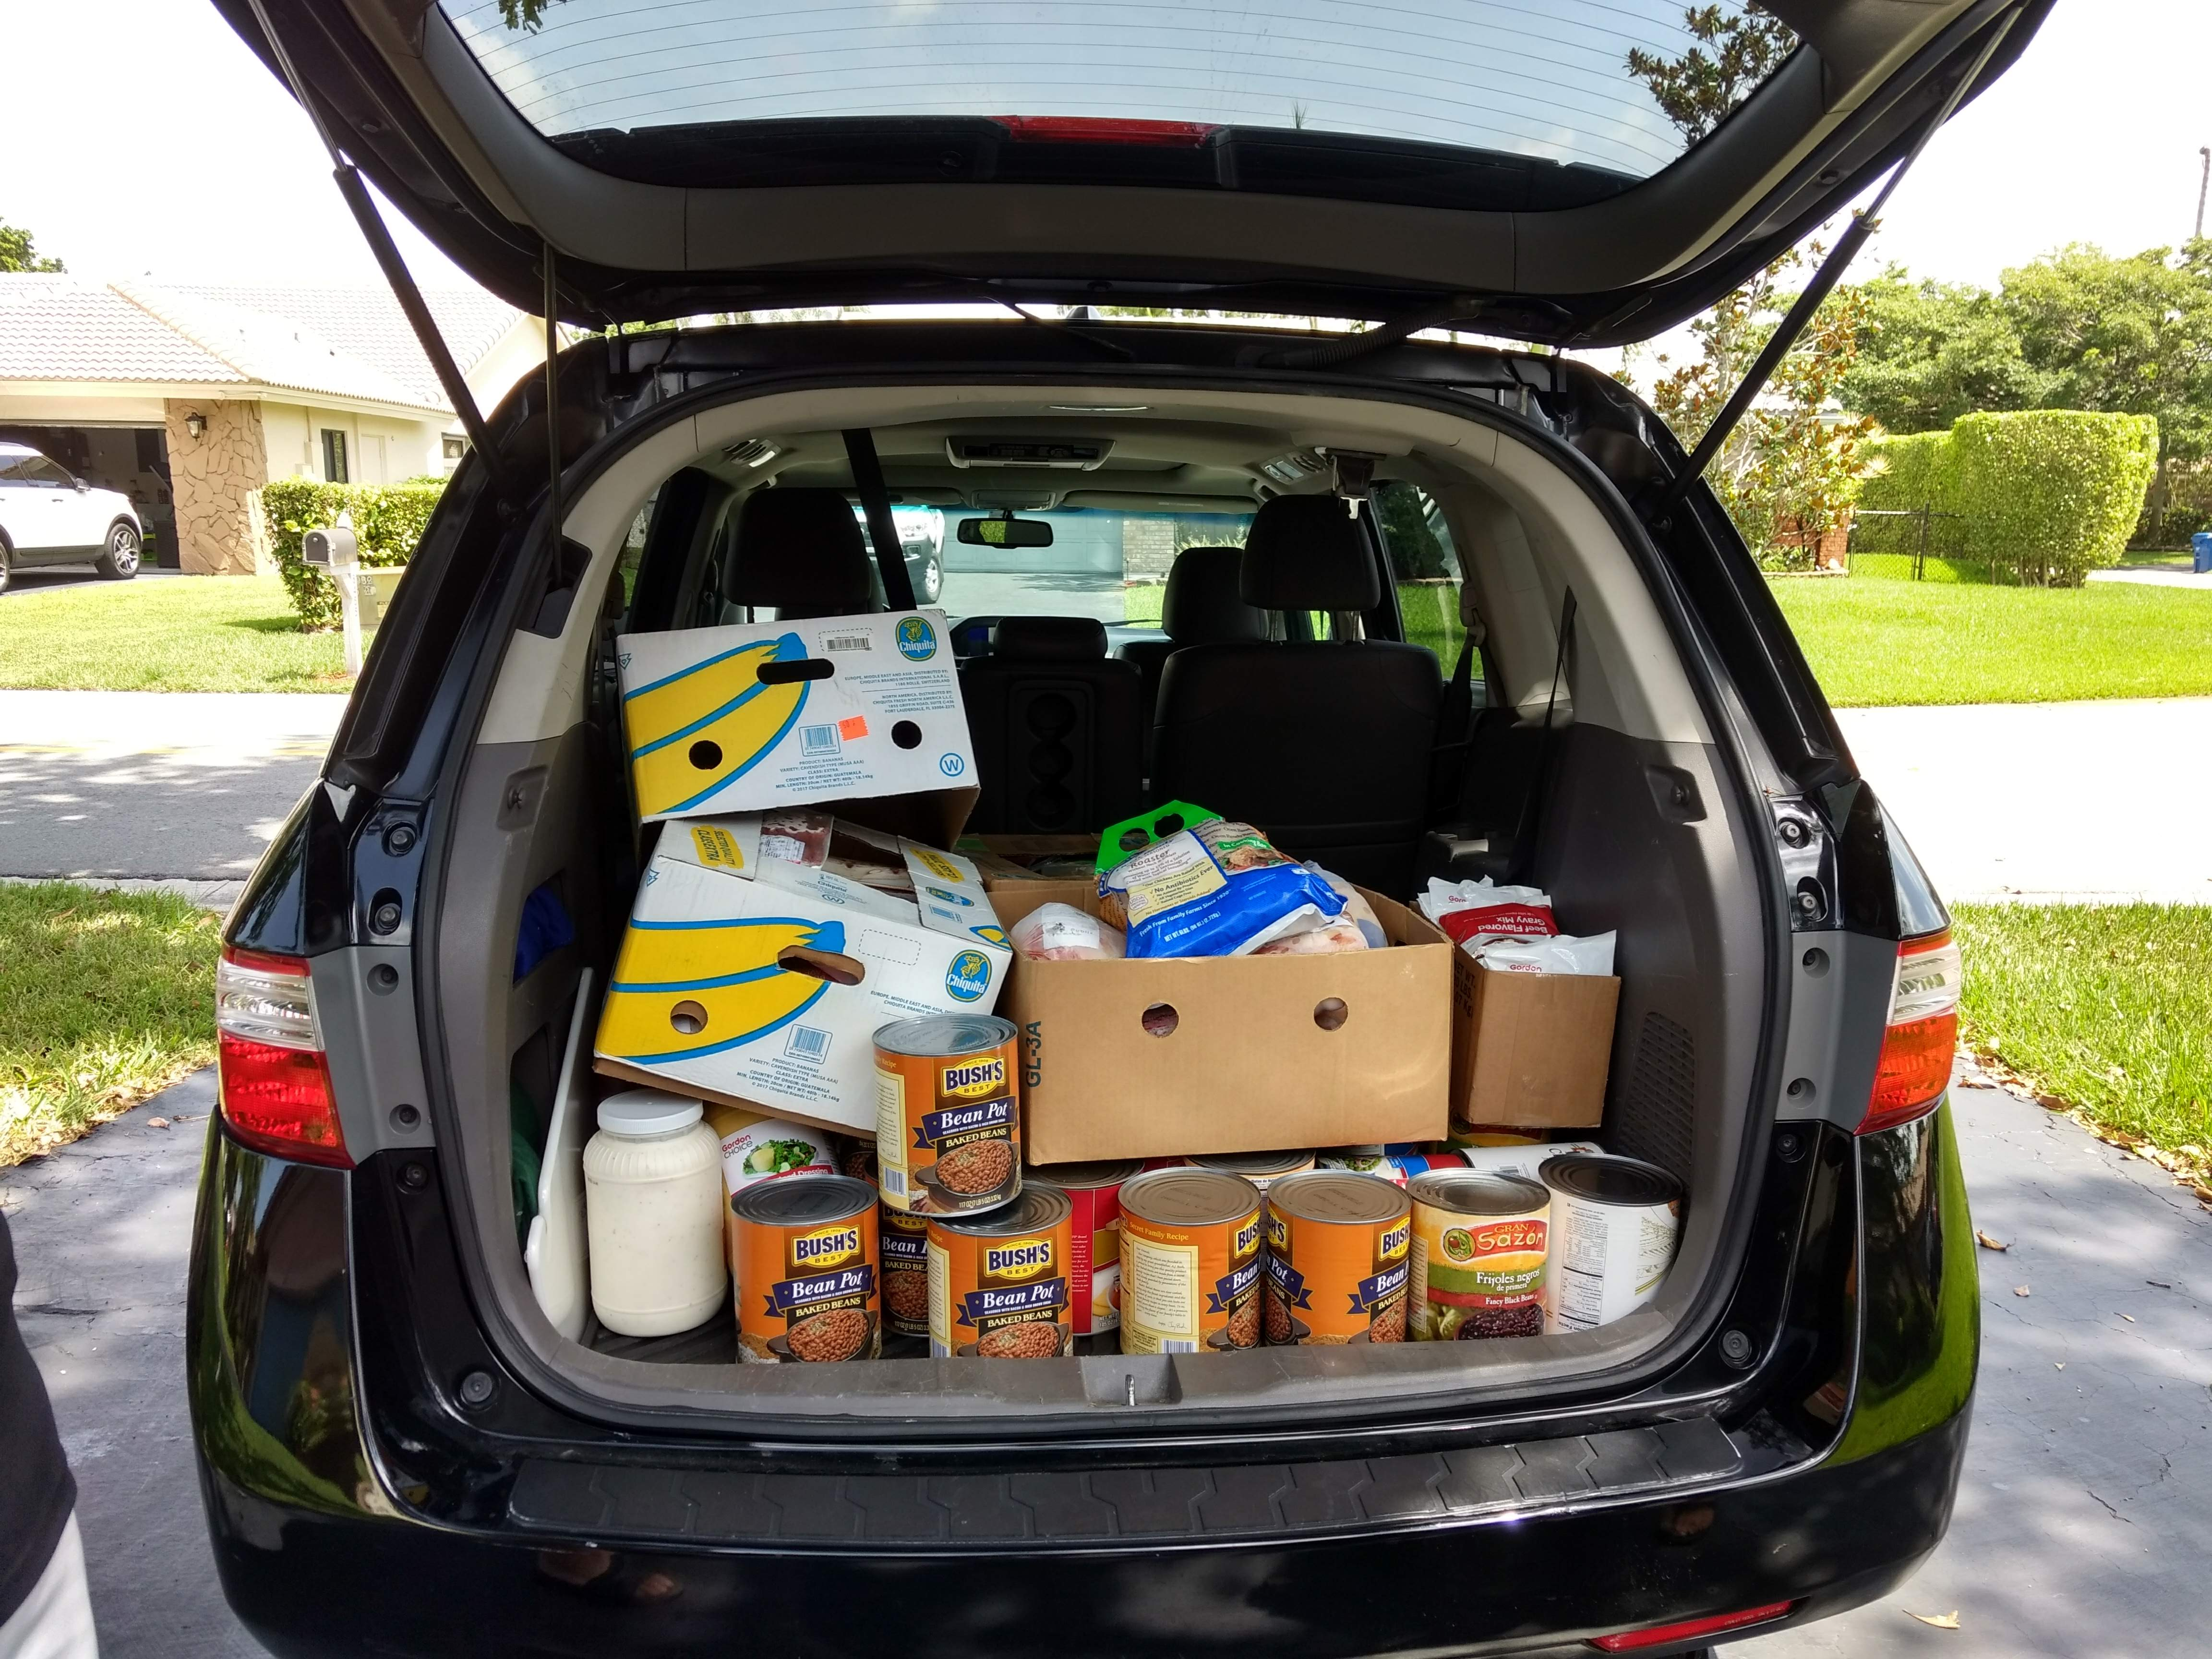 A car filled with goods for homeless people.